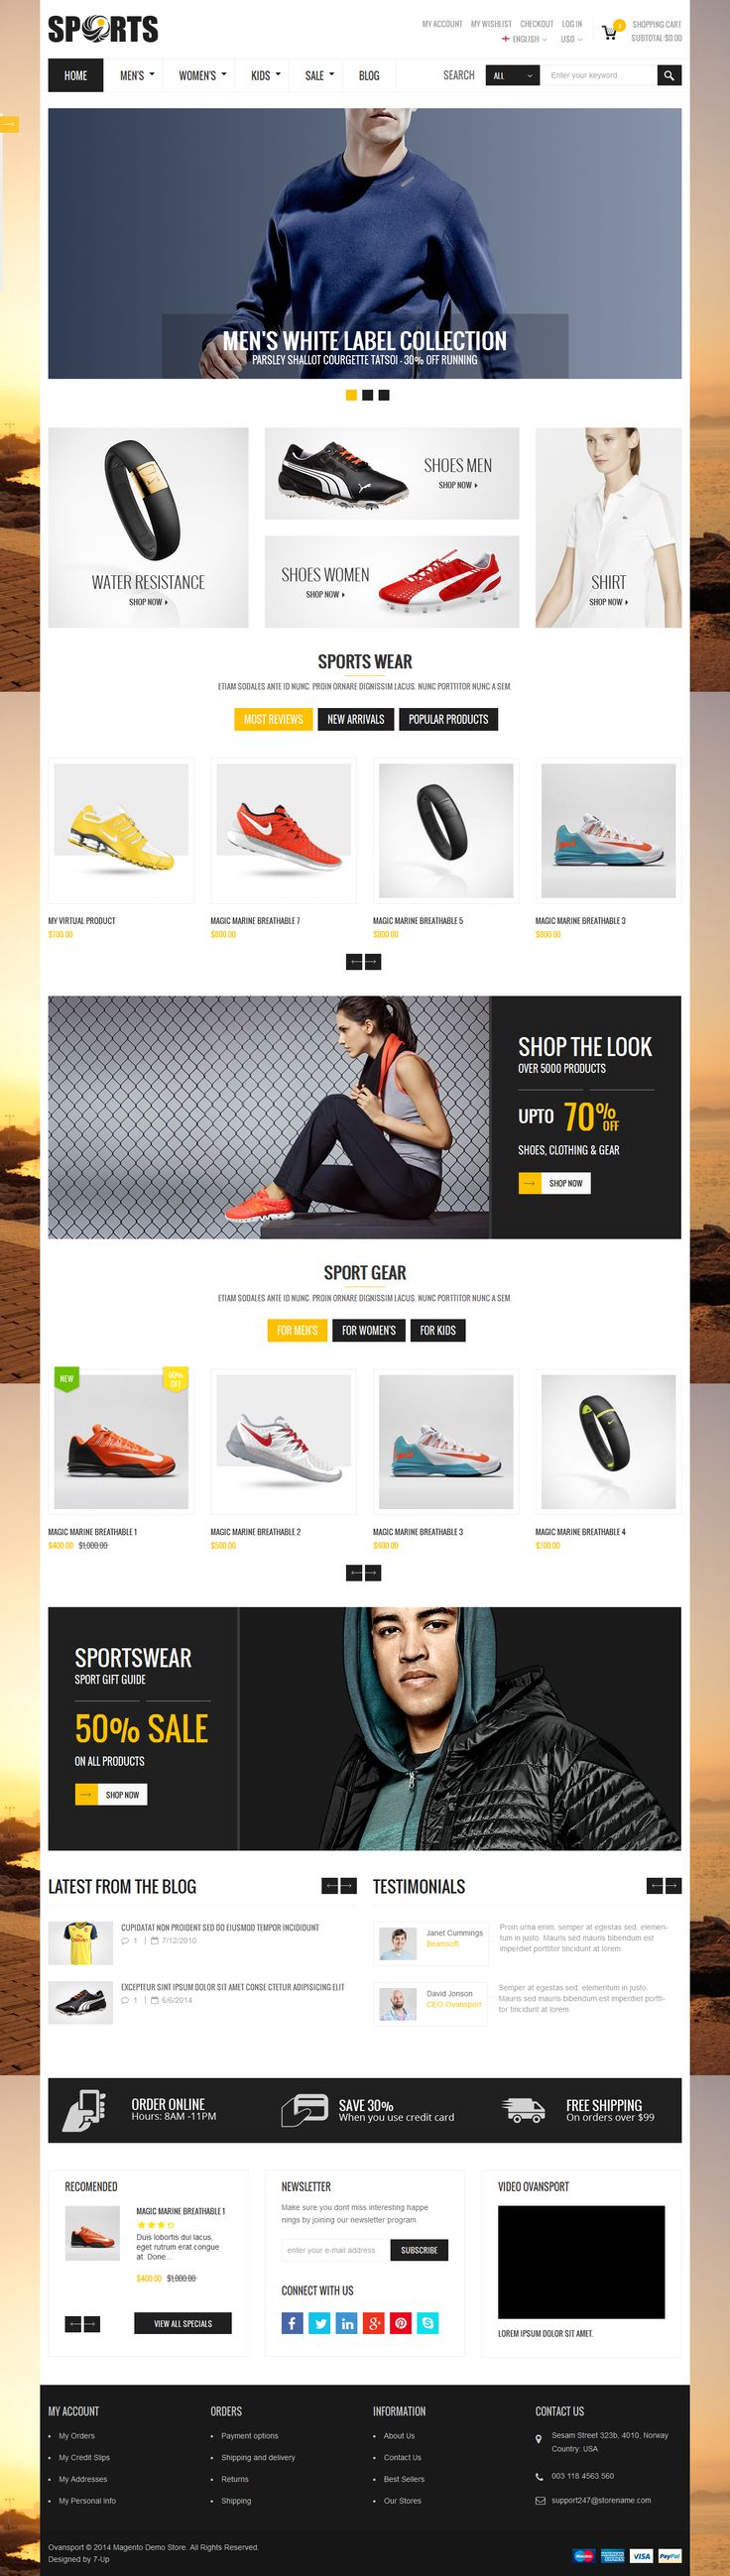 Ovansport – A fresh and clean design Published by Maan Ali